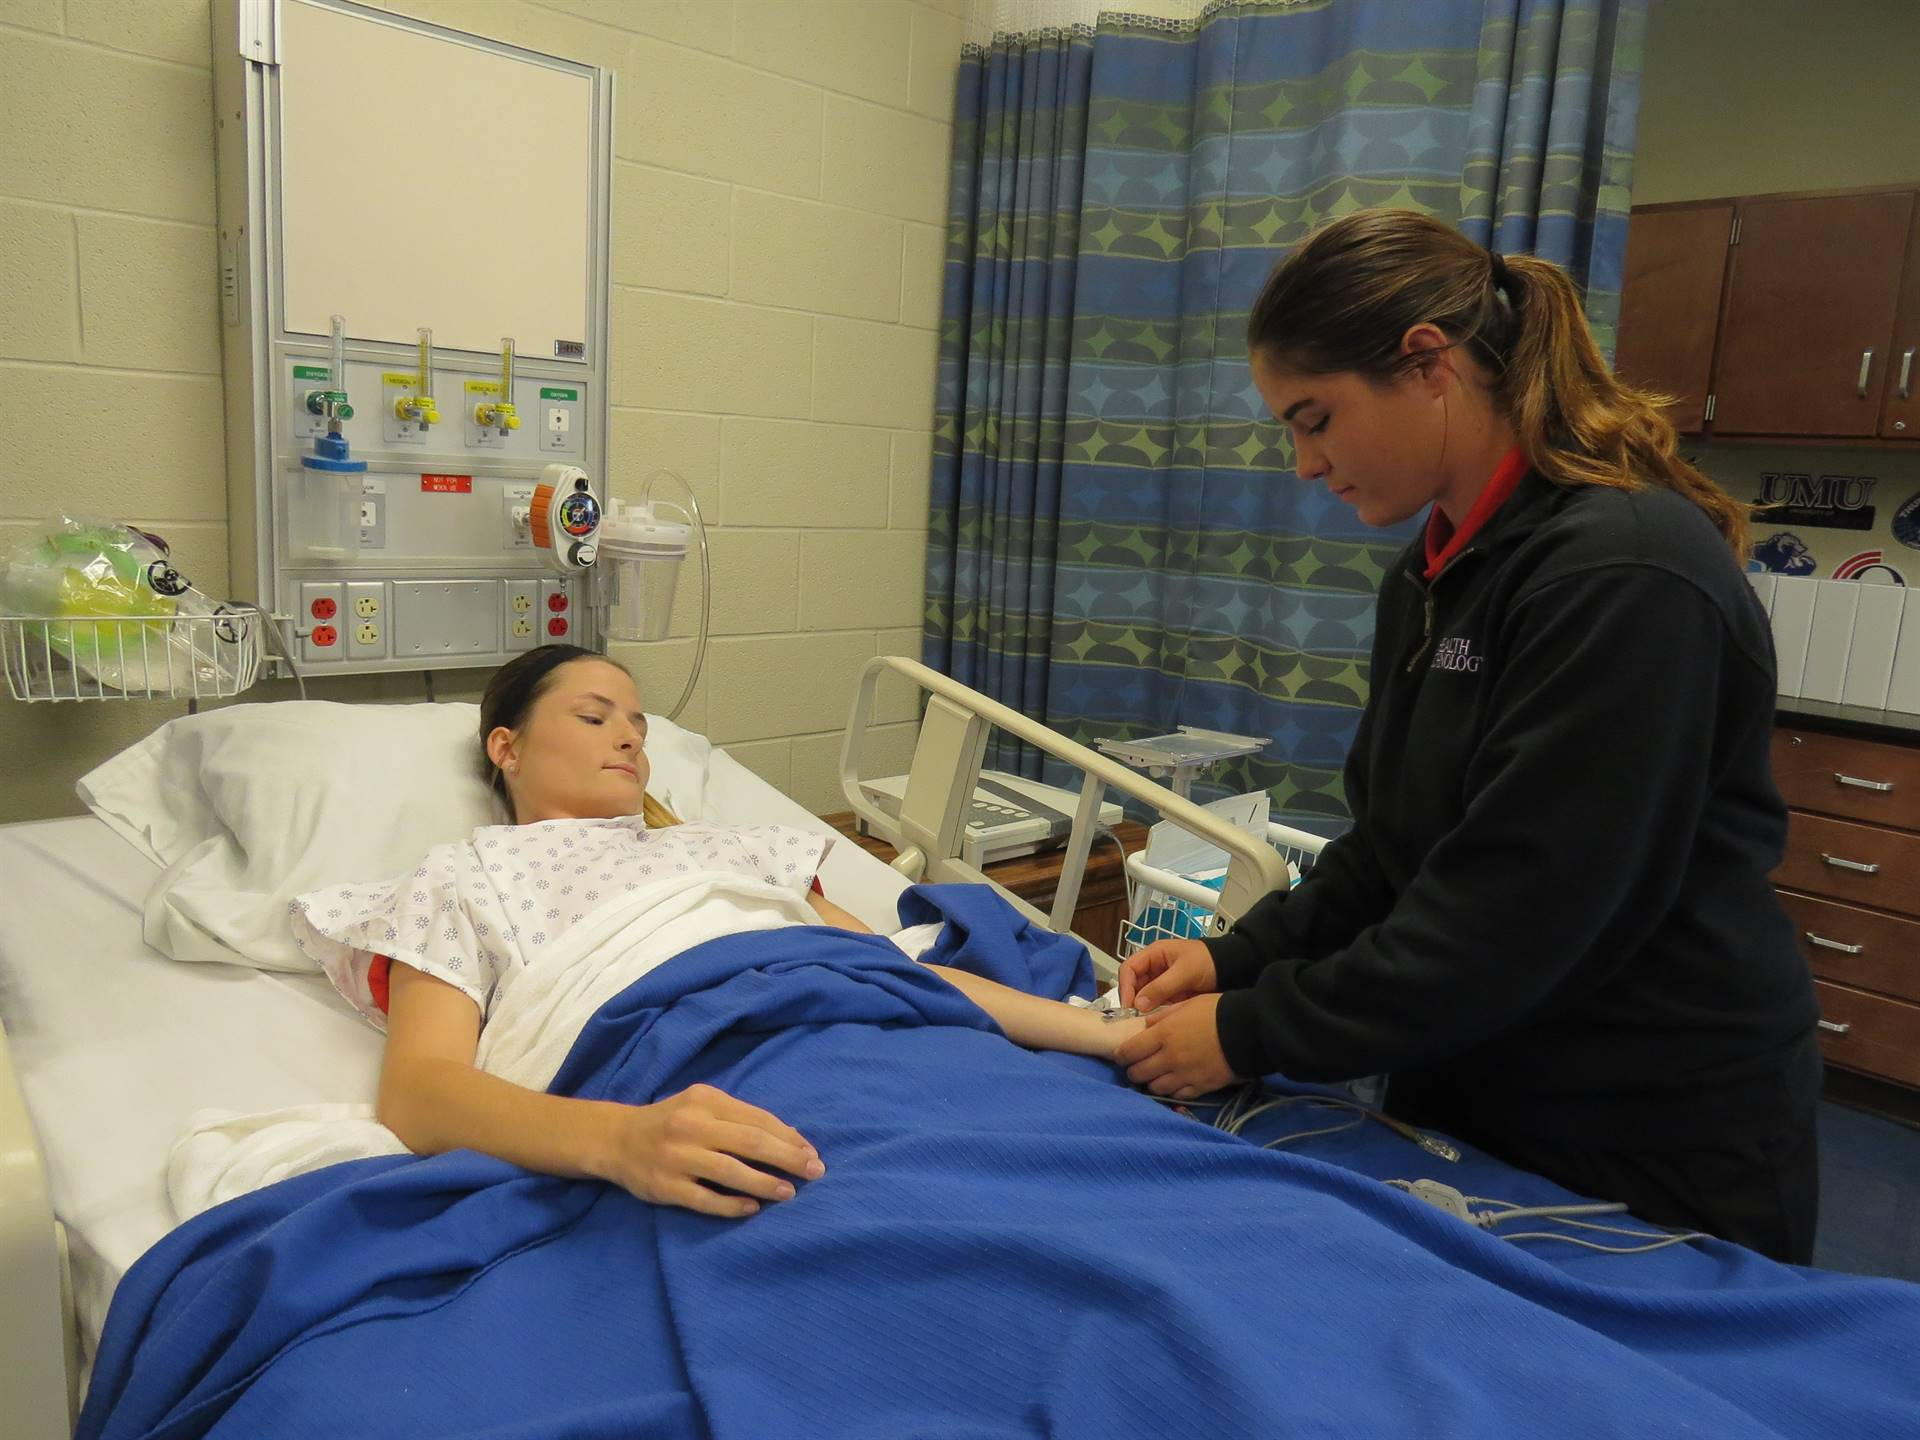 Female patient in hospital bed with female student attending to her